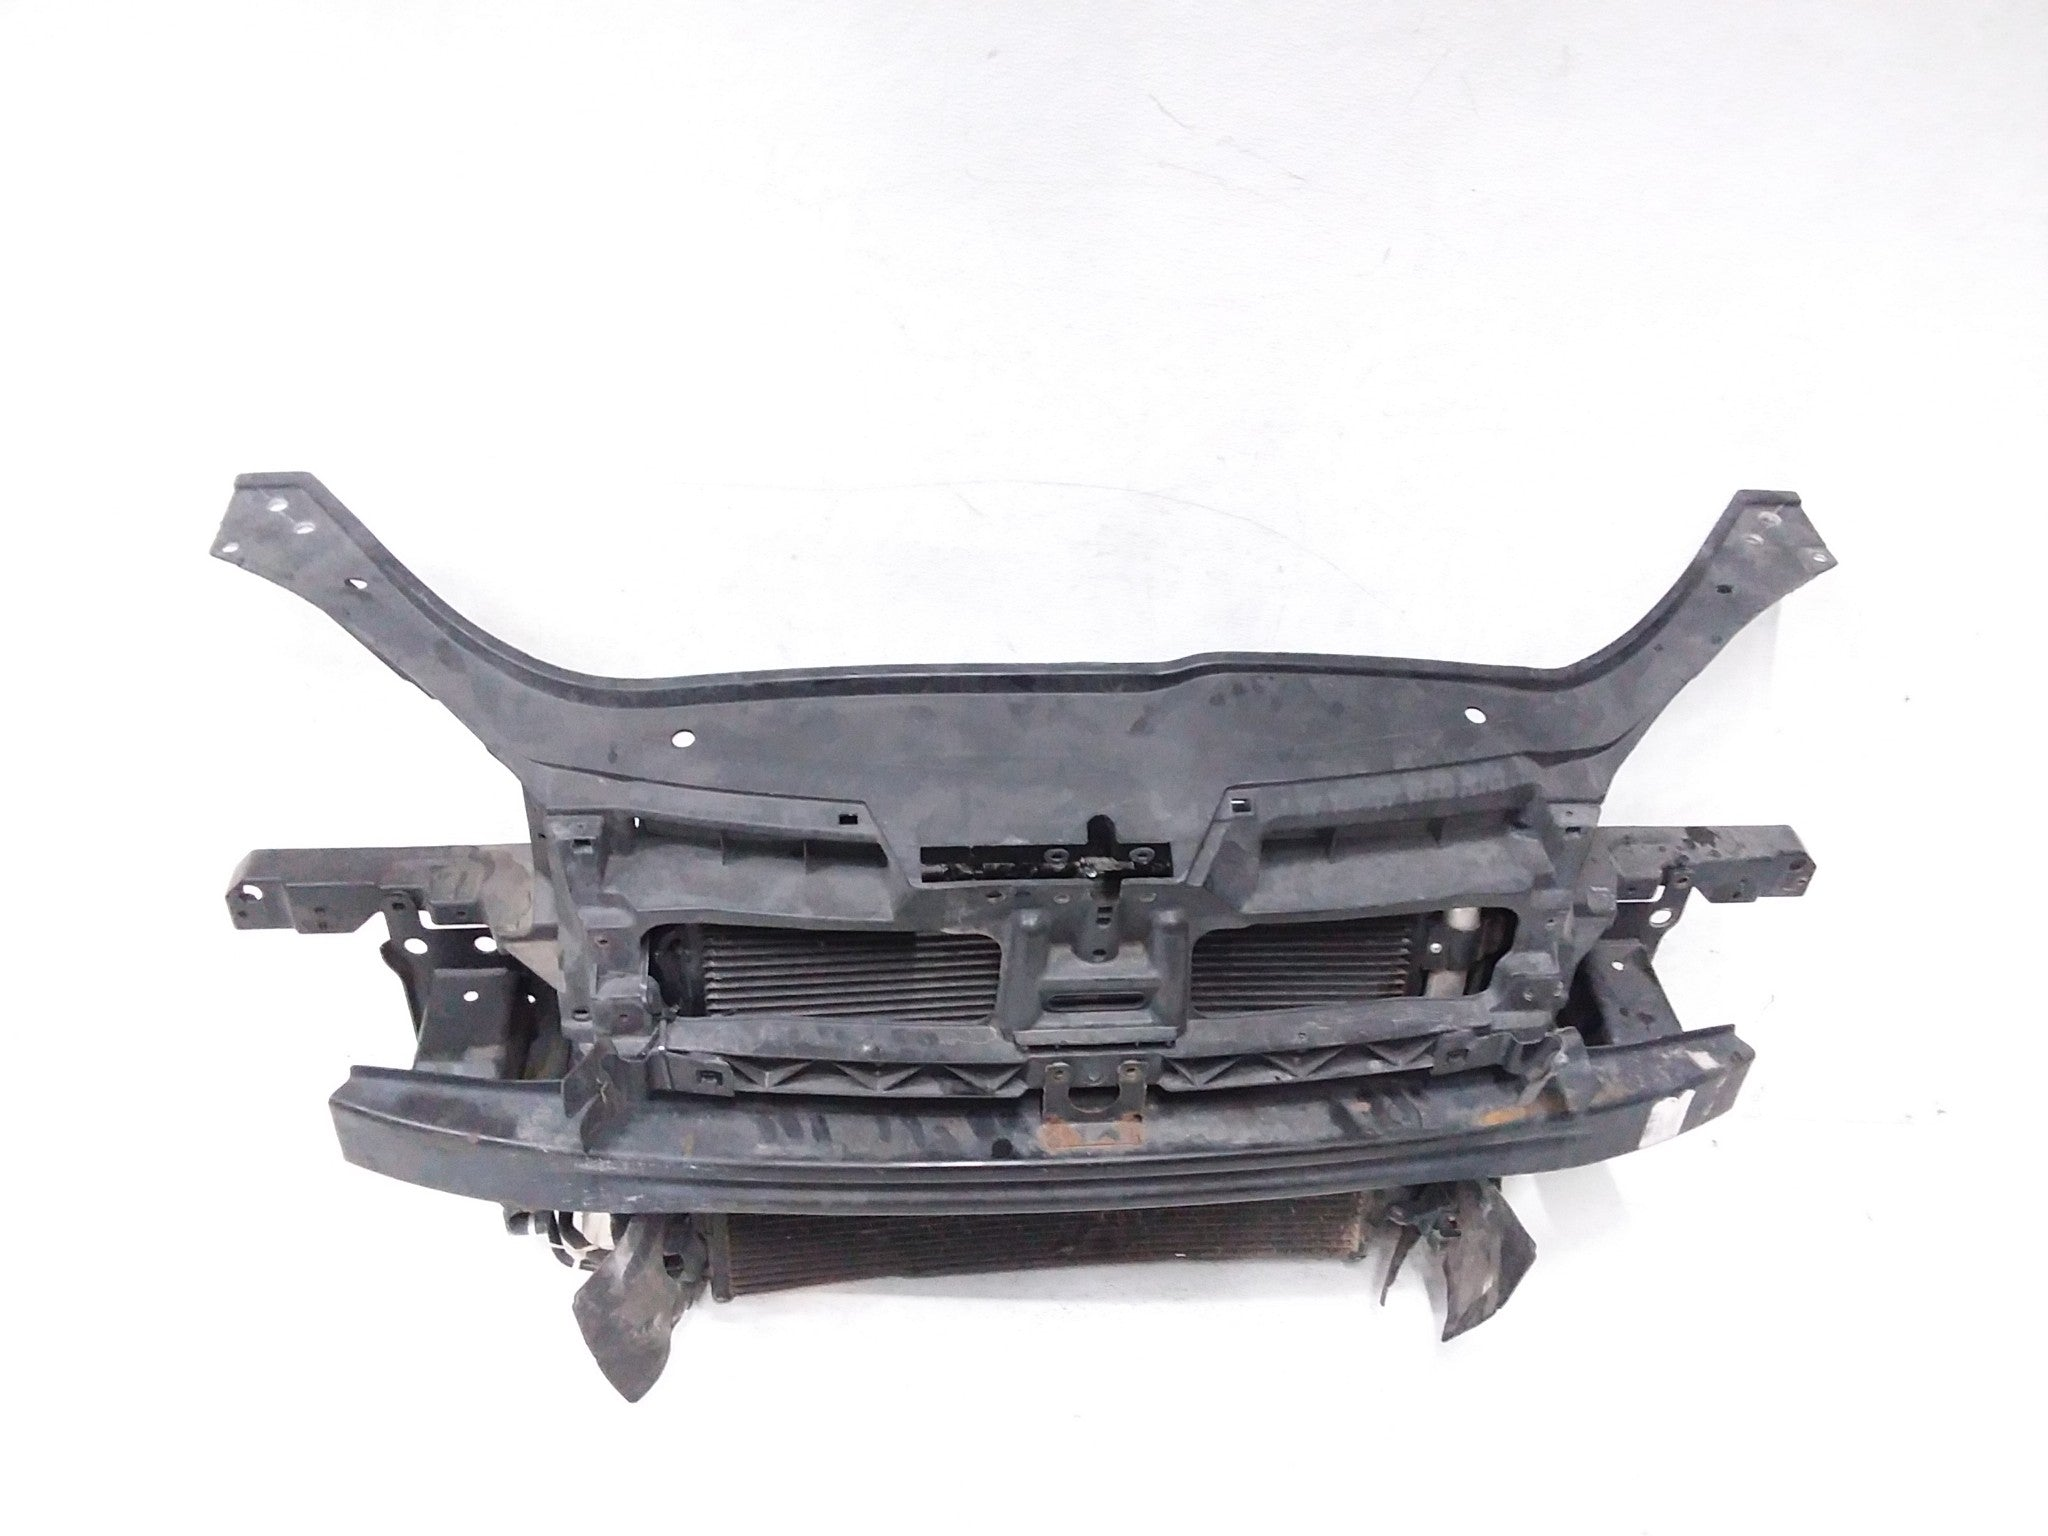 2005-2010 VOLKSWAGEN JETTA RADIATOR SUPPORT CONDENSER & FAN REINFPRCEMENT BAR